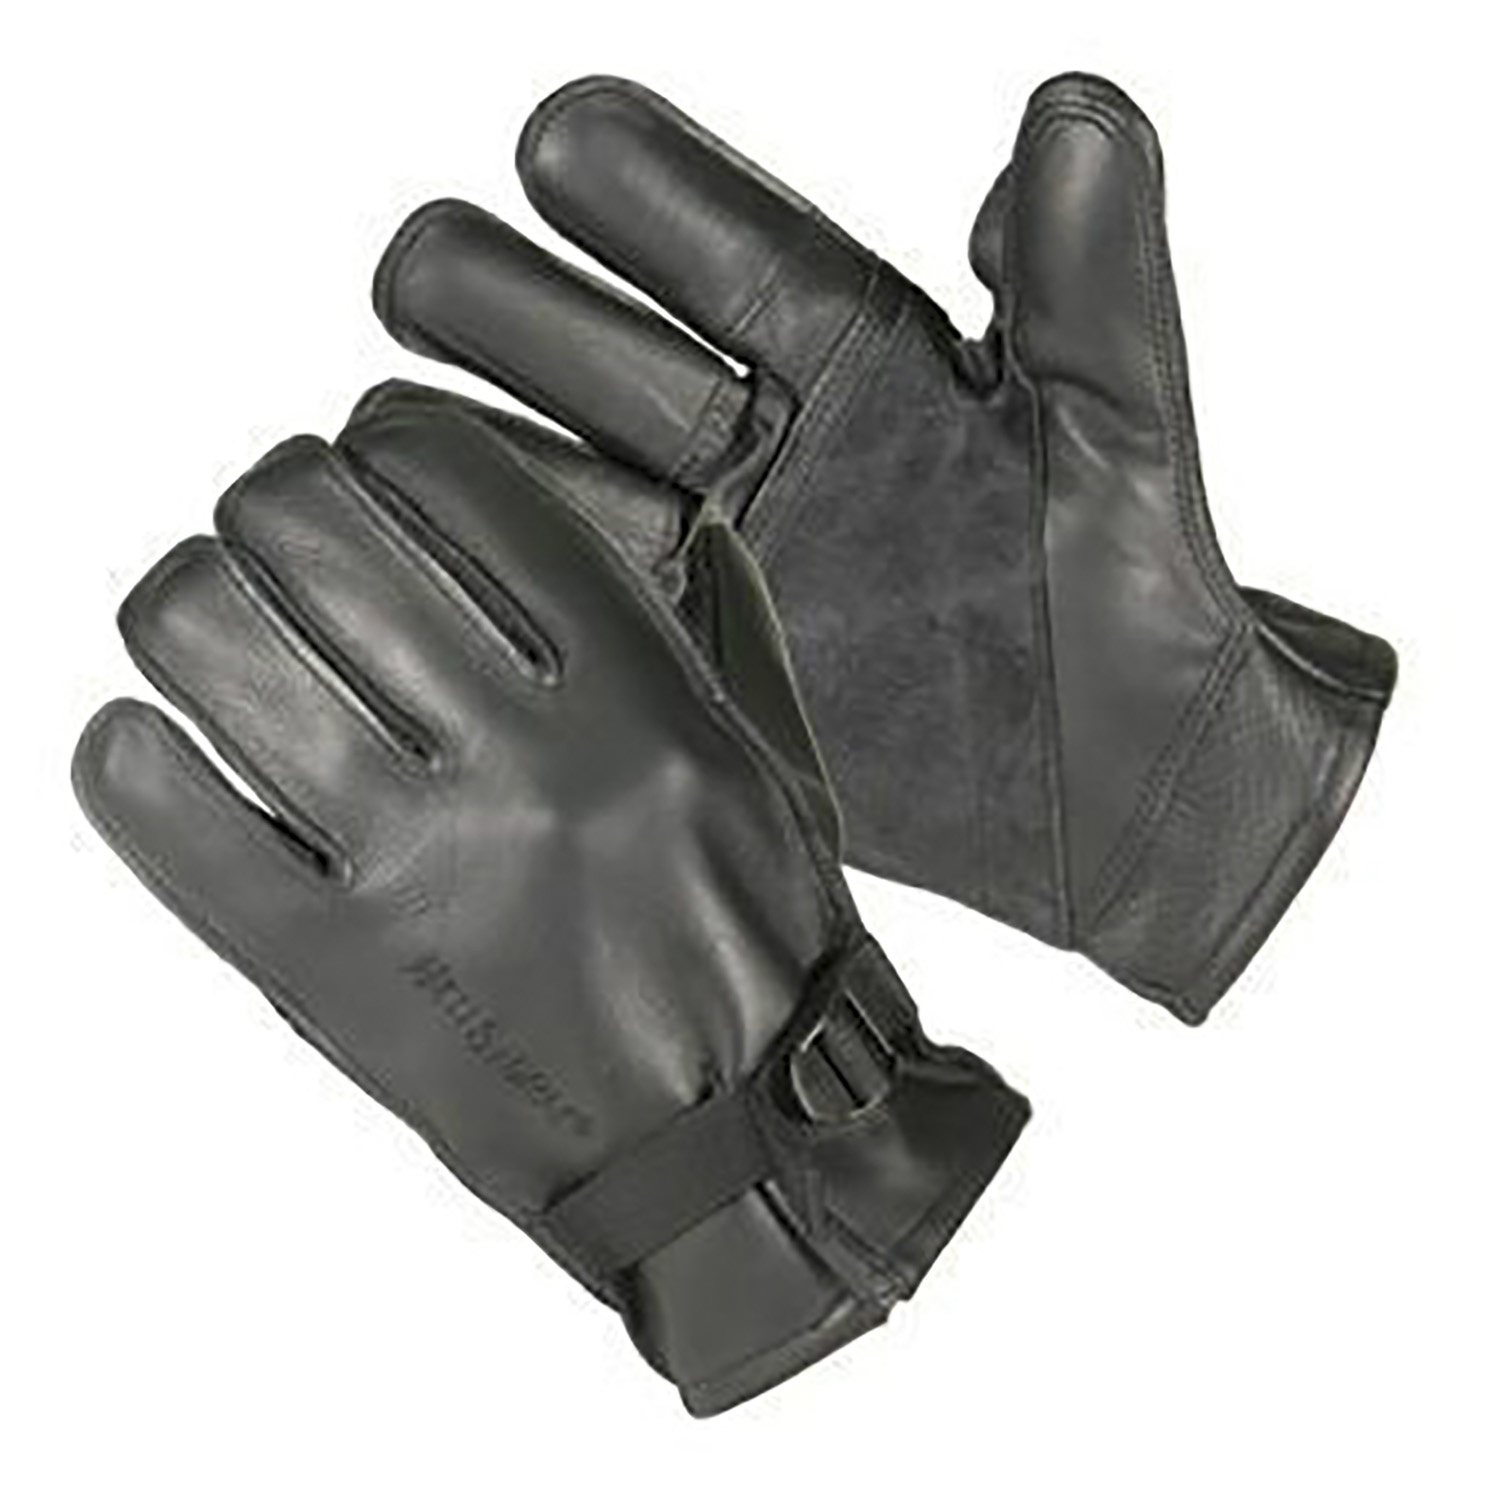 Blackhawk StrikeForce Heavy Duty Fastrope Gloves